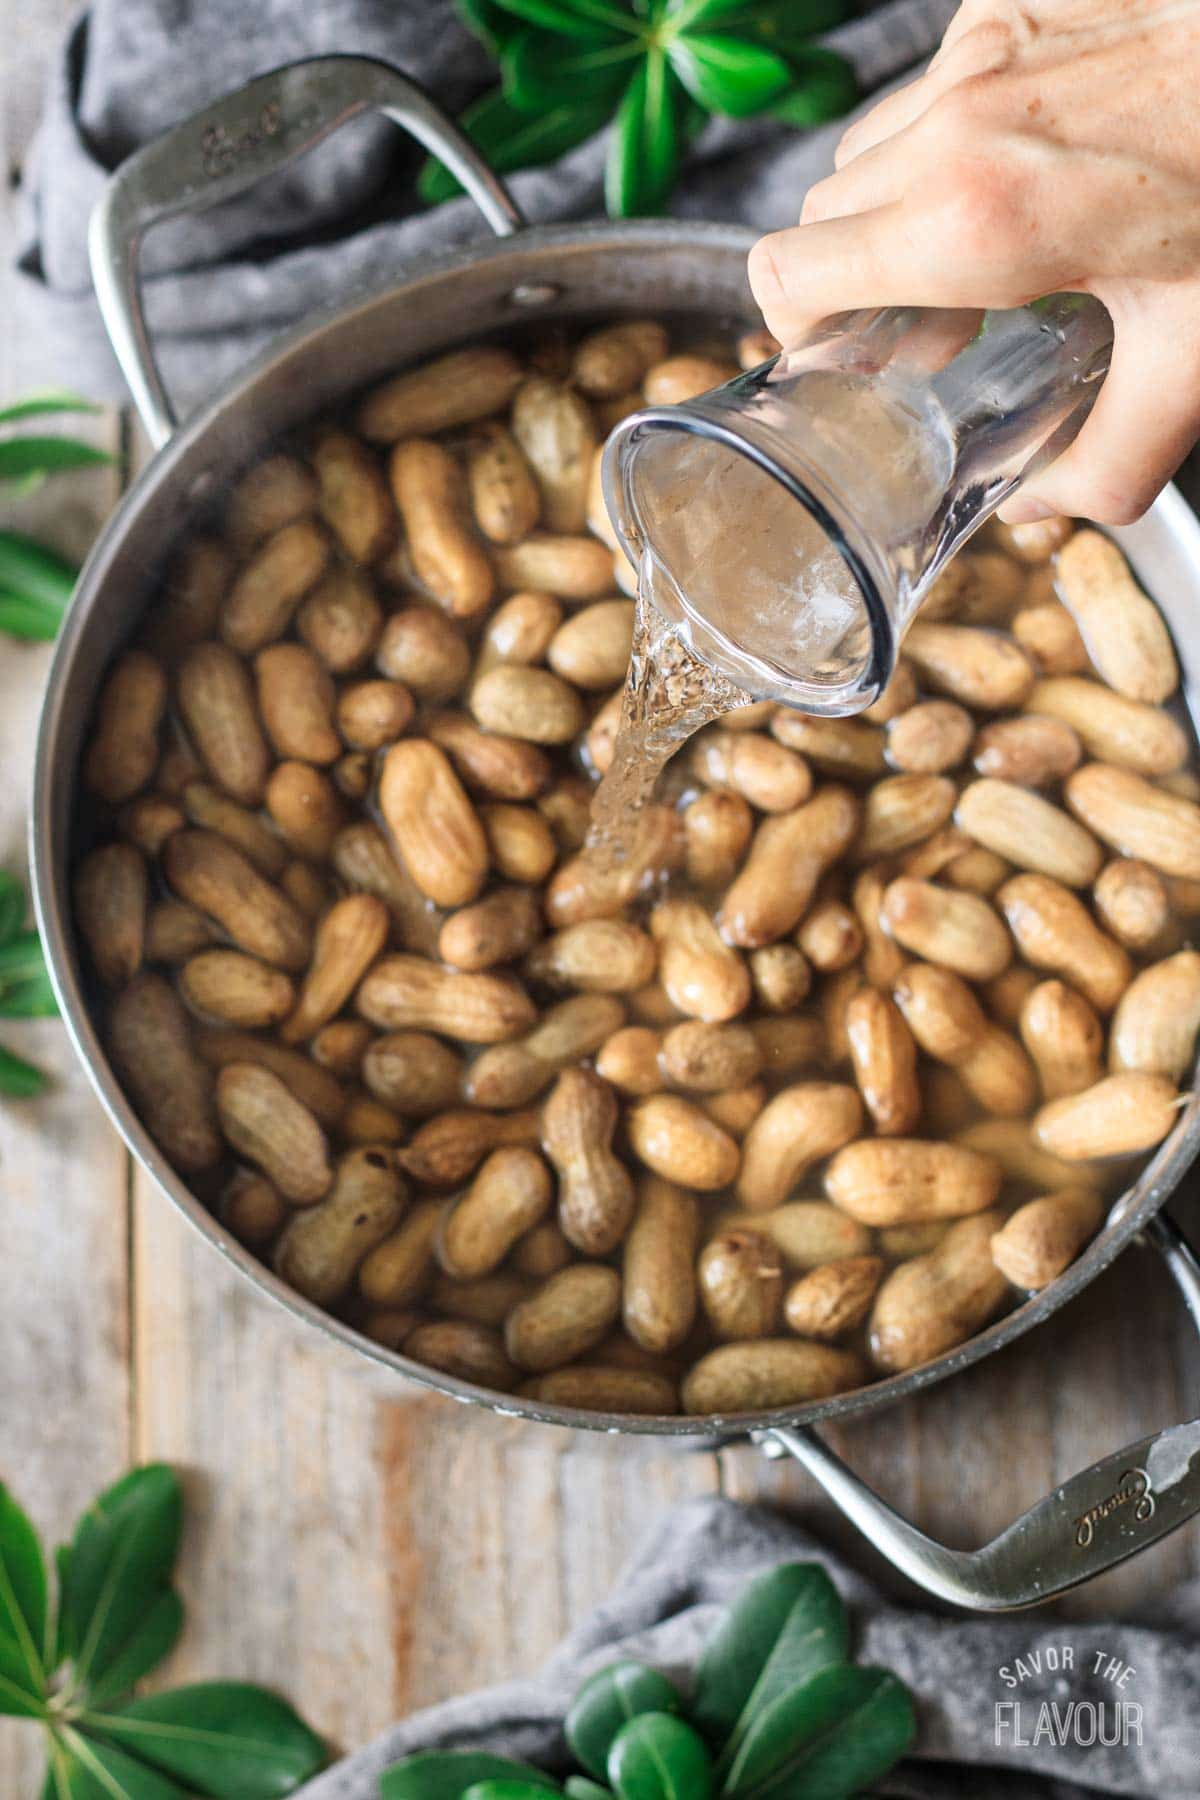 pouring water into a pot of boiled peanuts